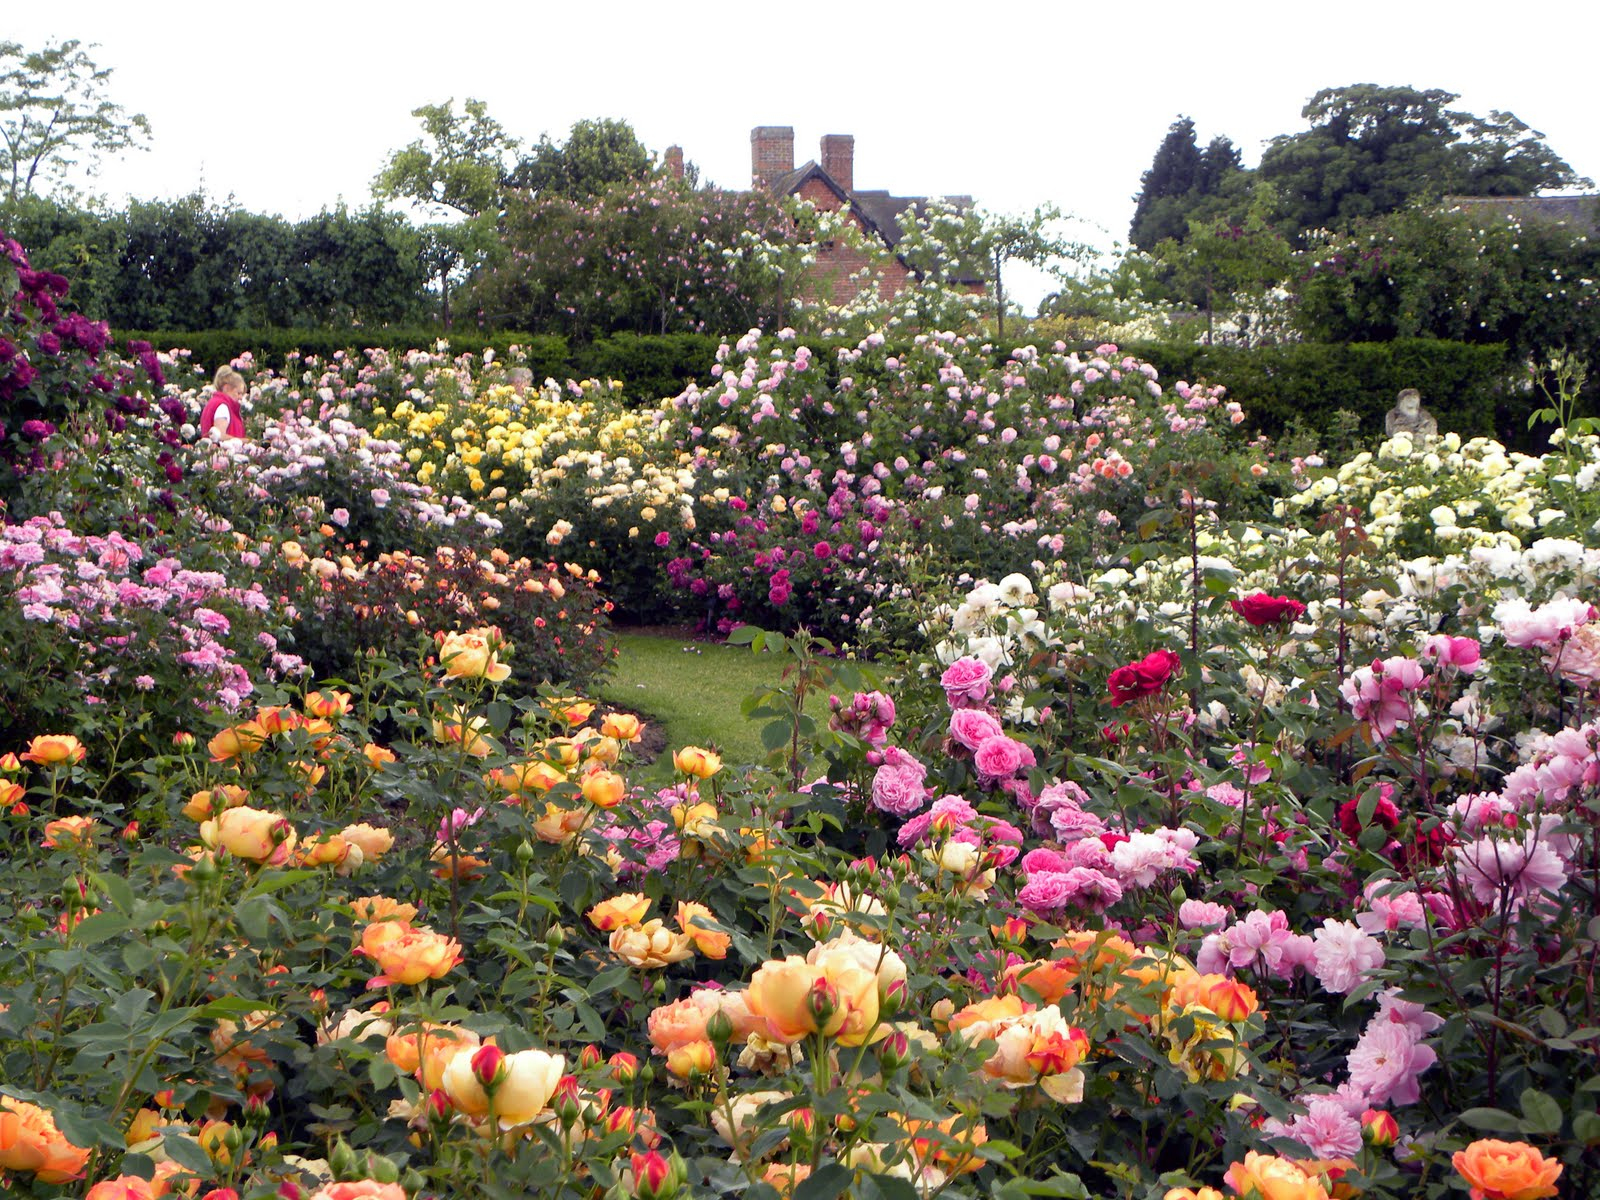 Backyard rose garden - Who Could Possibly Have Enough Roses In A Garden To Make The Landscape